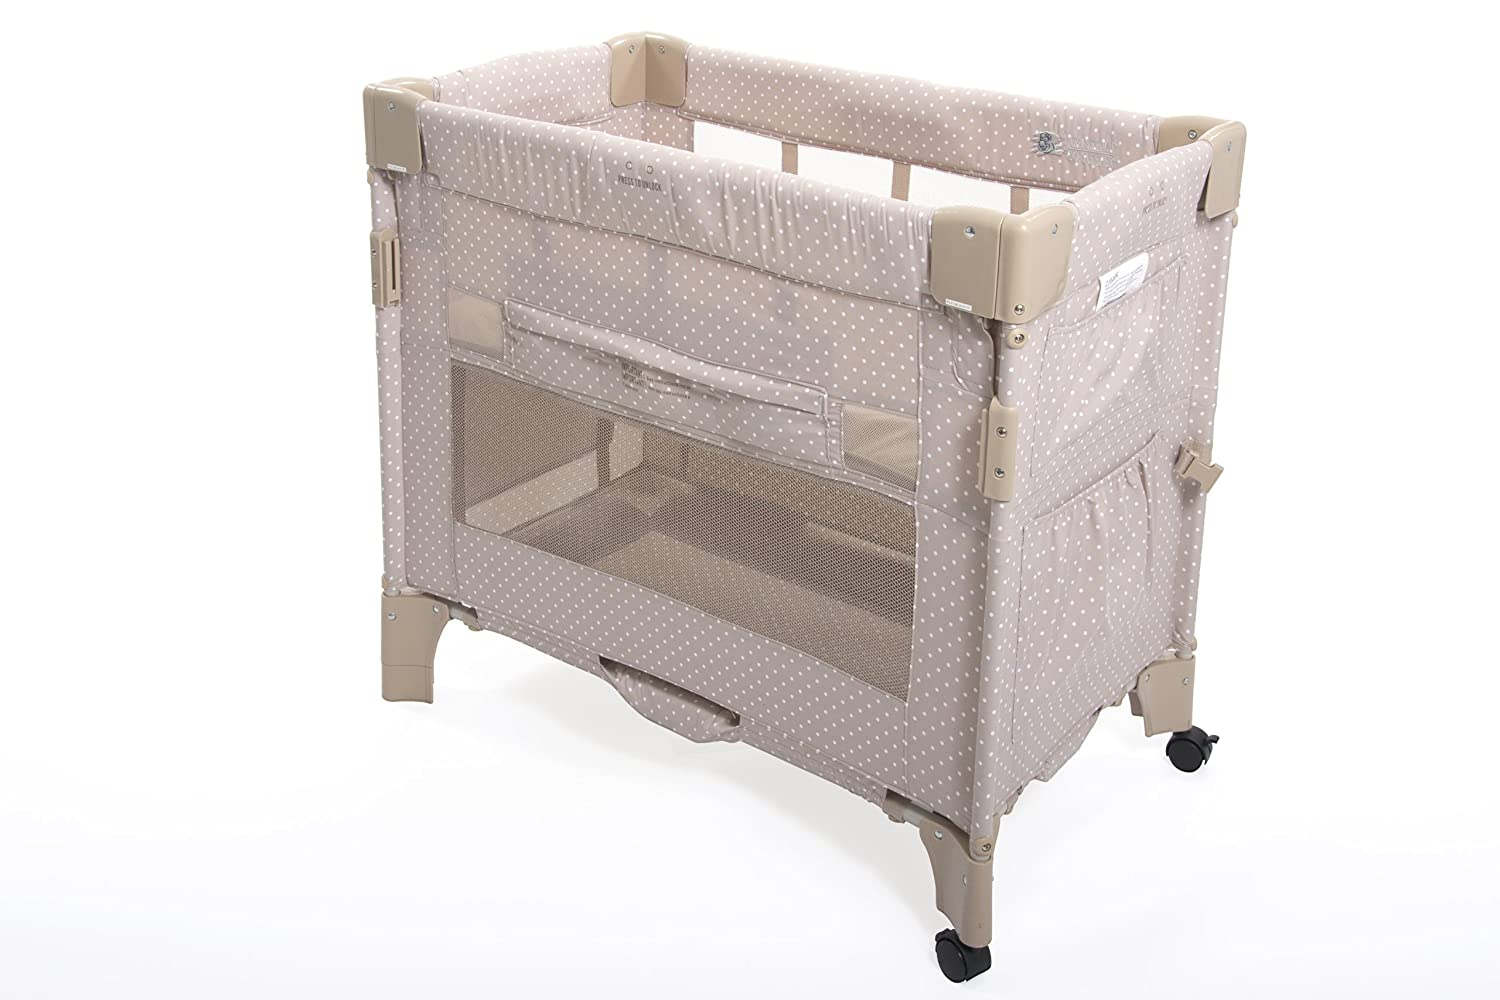 Amazon.com : Arm's Reach Co-Sleeper Mini Bassinet, Tan Dot (Discontinued by  Manufacturer) : Baby